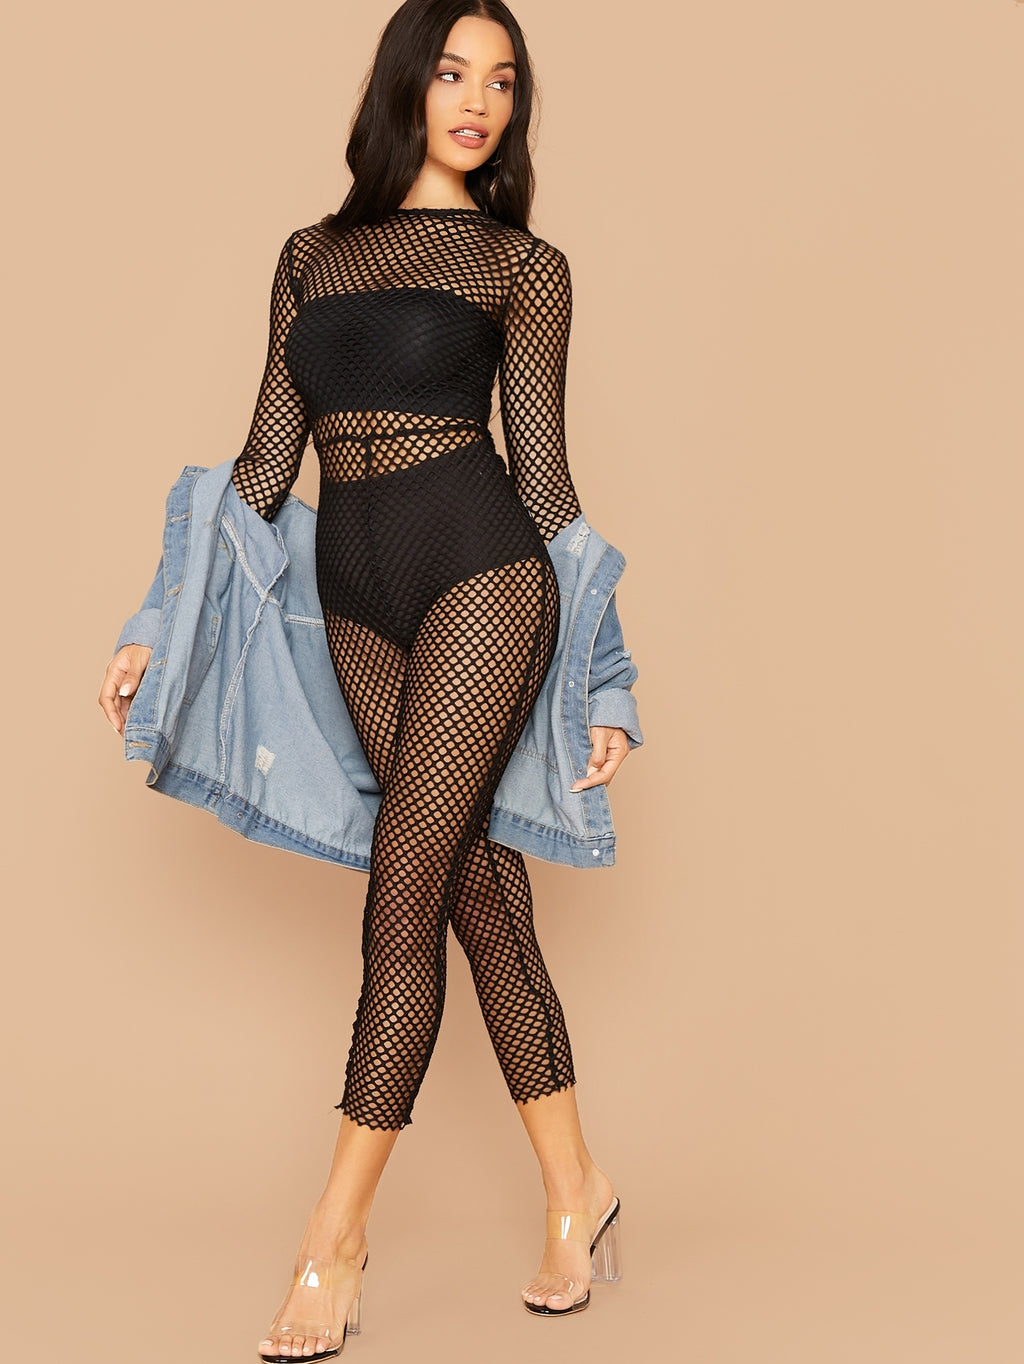 Sheer Fishnet Mesh Skinny Jumpsuit Without Lingerie (4377967001665)